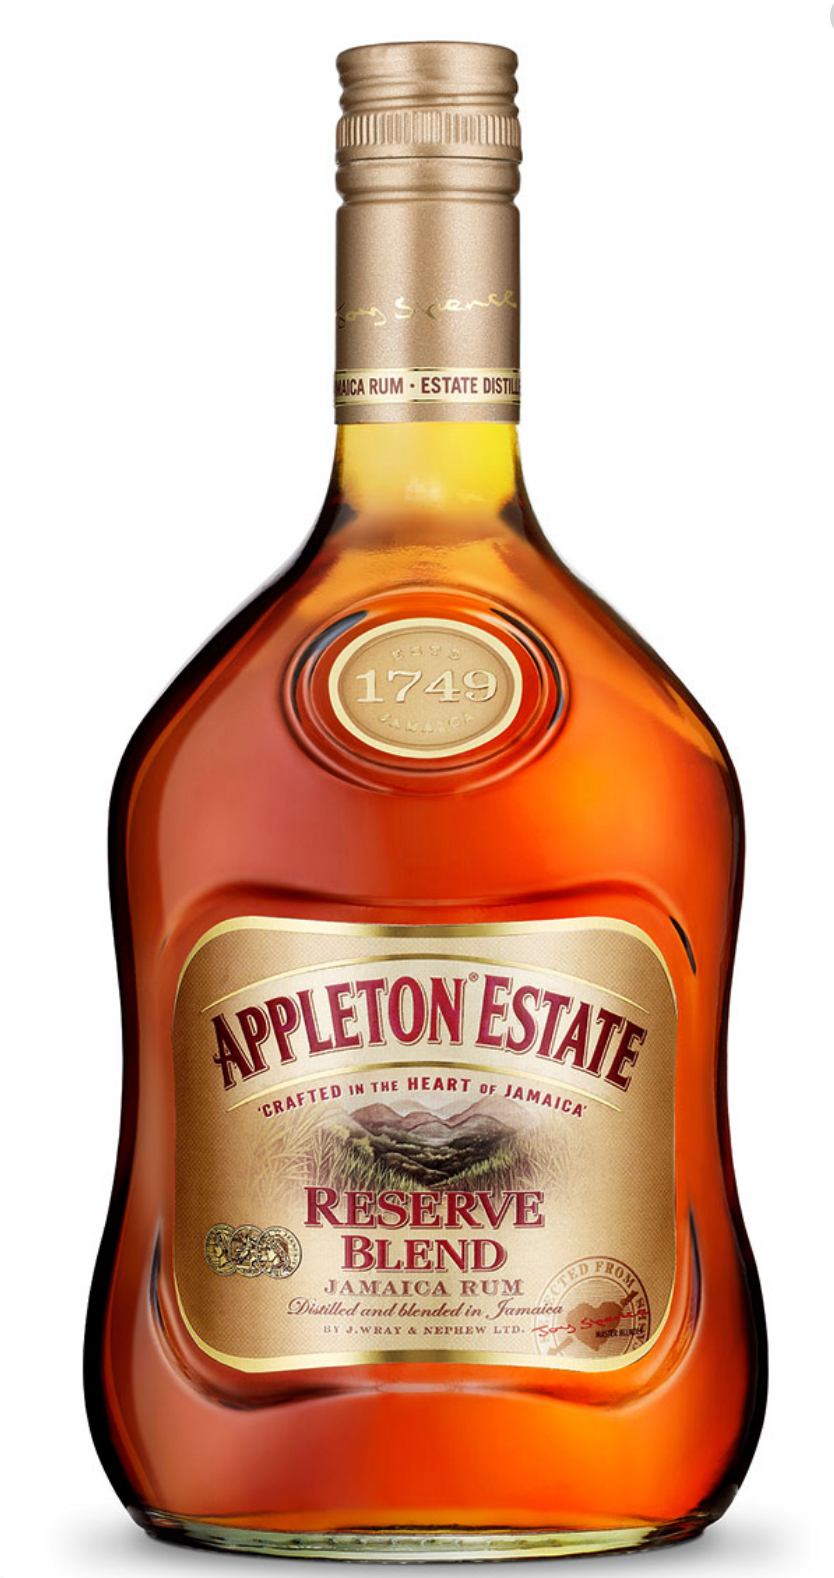 Appleton Estate Reserve Blend Jamaica Rum